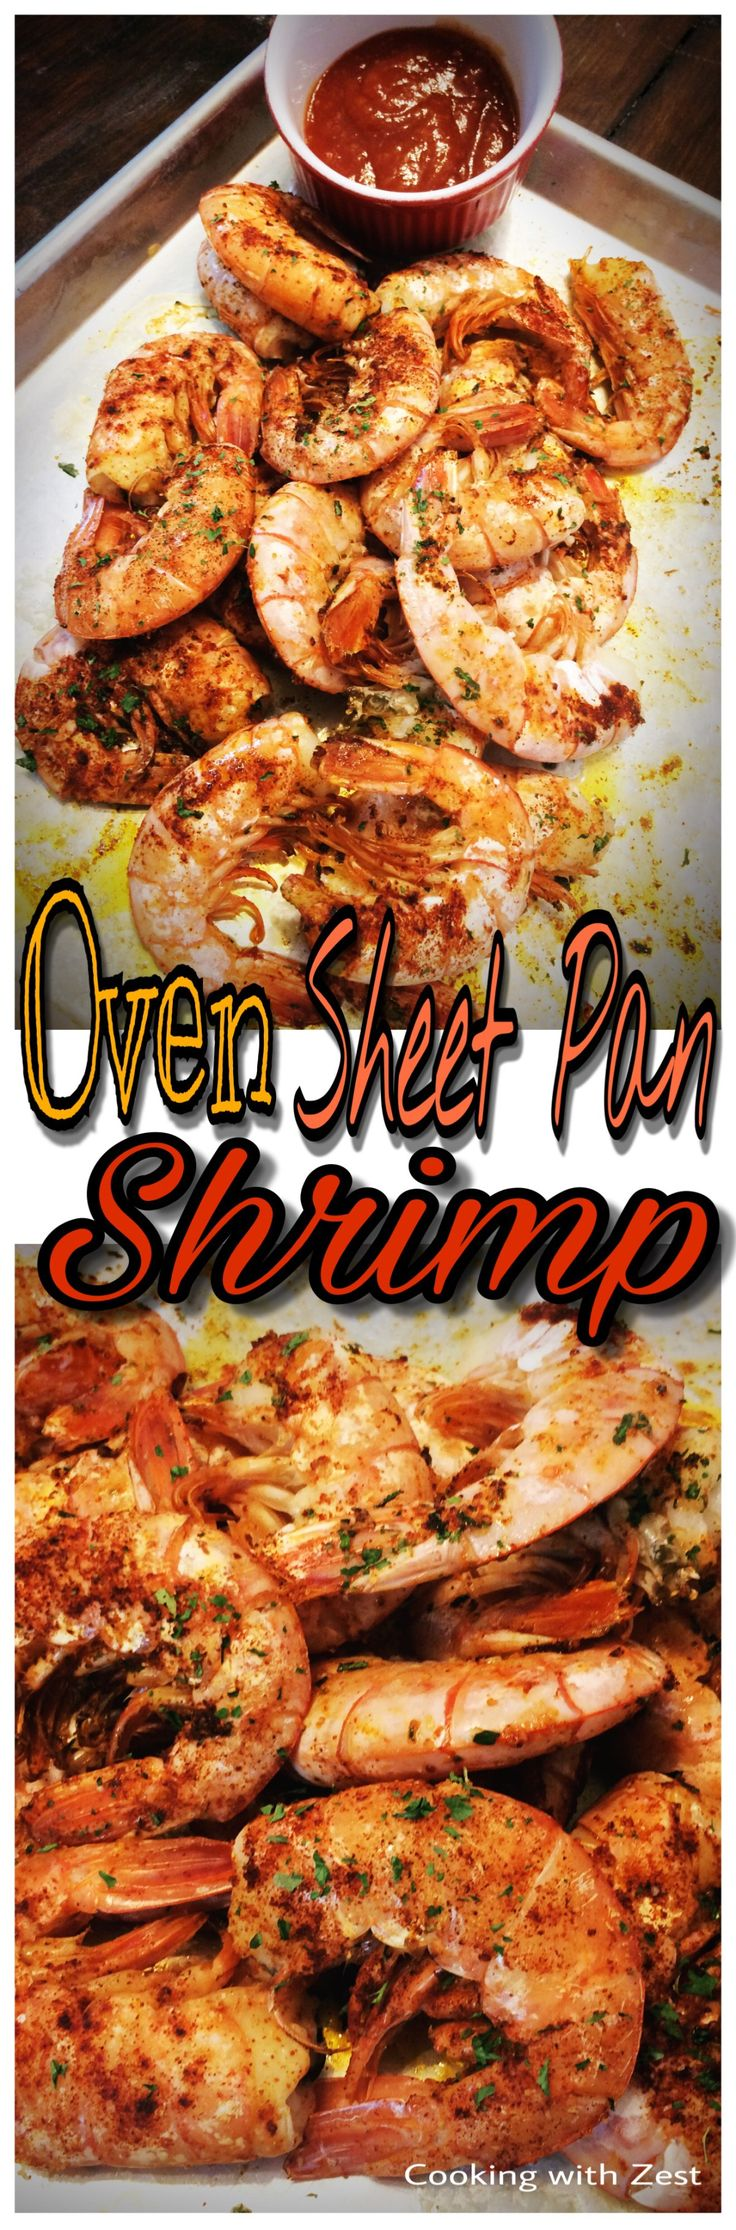 Oven Sheet Pan Shrimp is an EASY and FAST dish to make any night of the week!